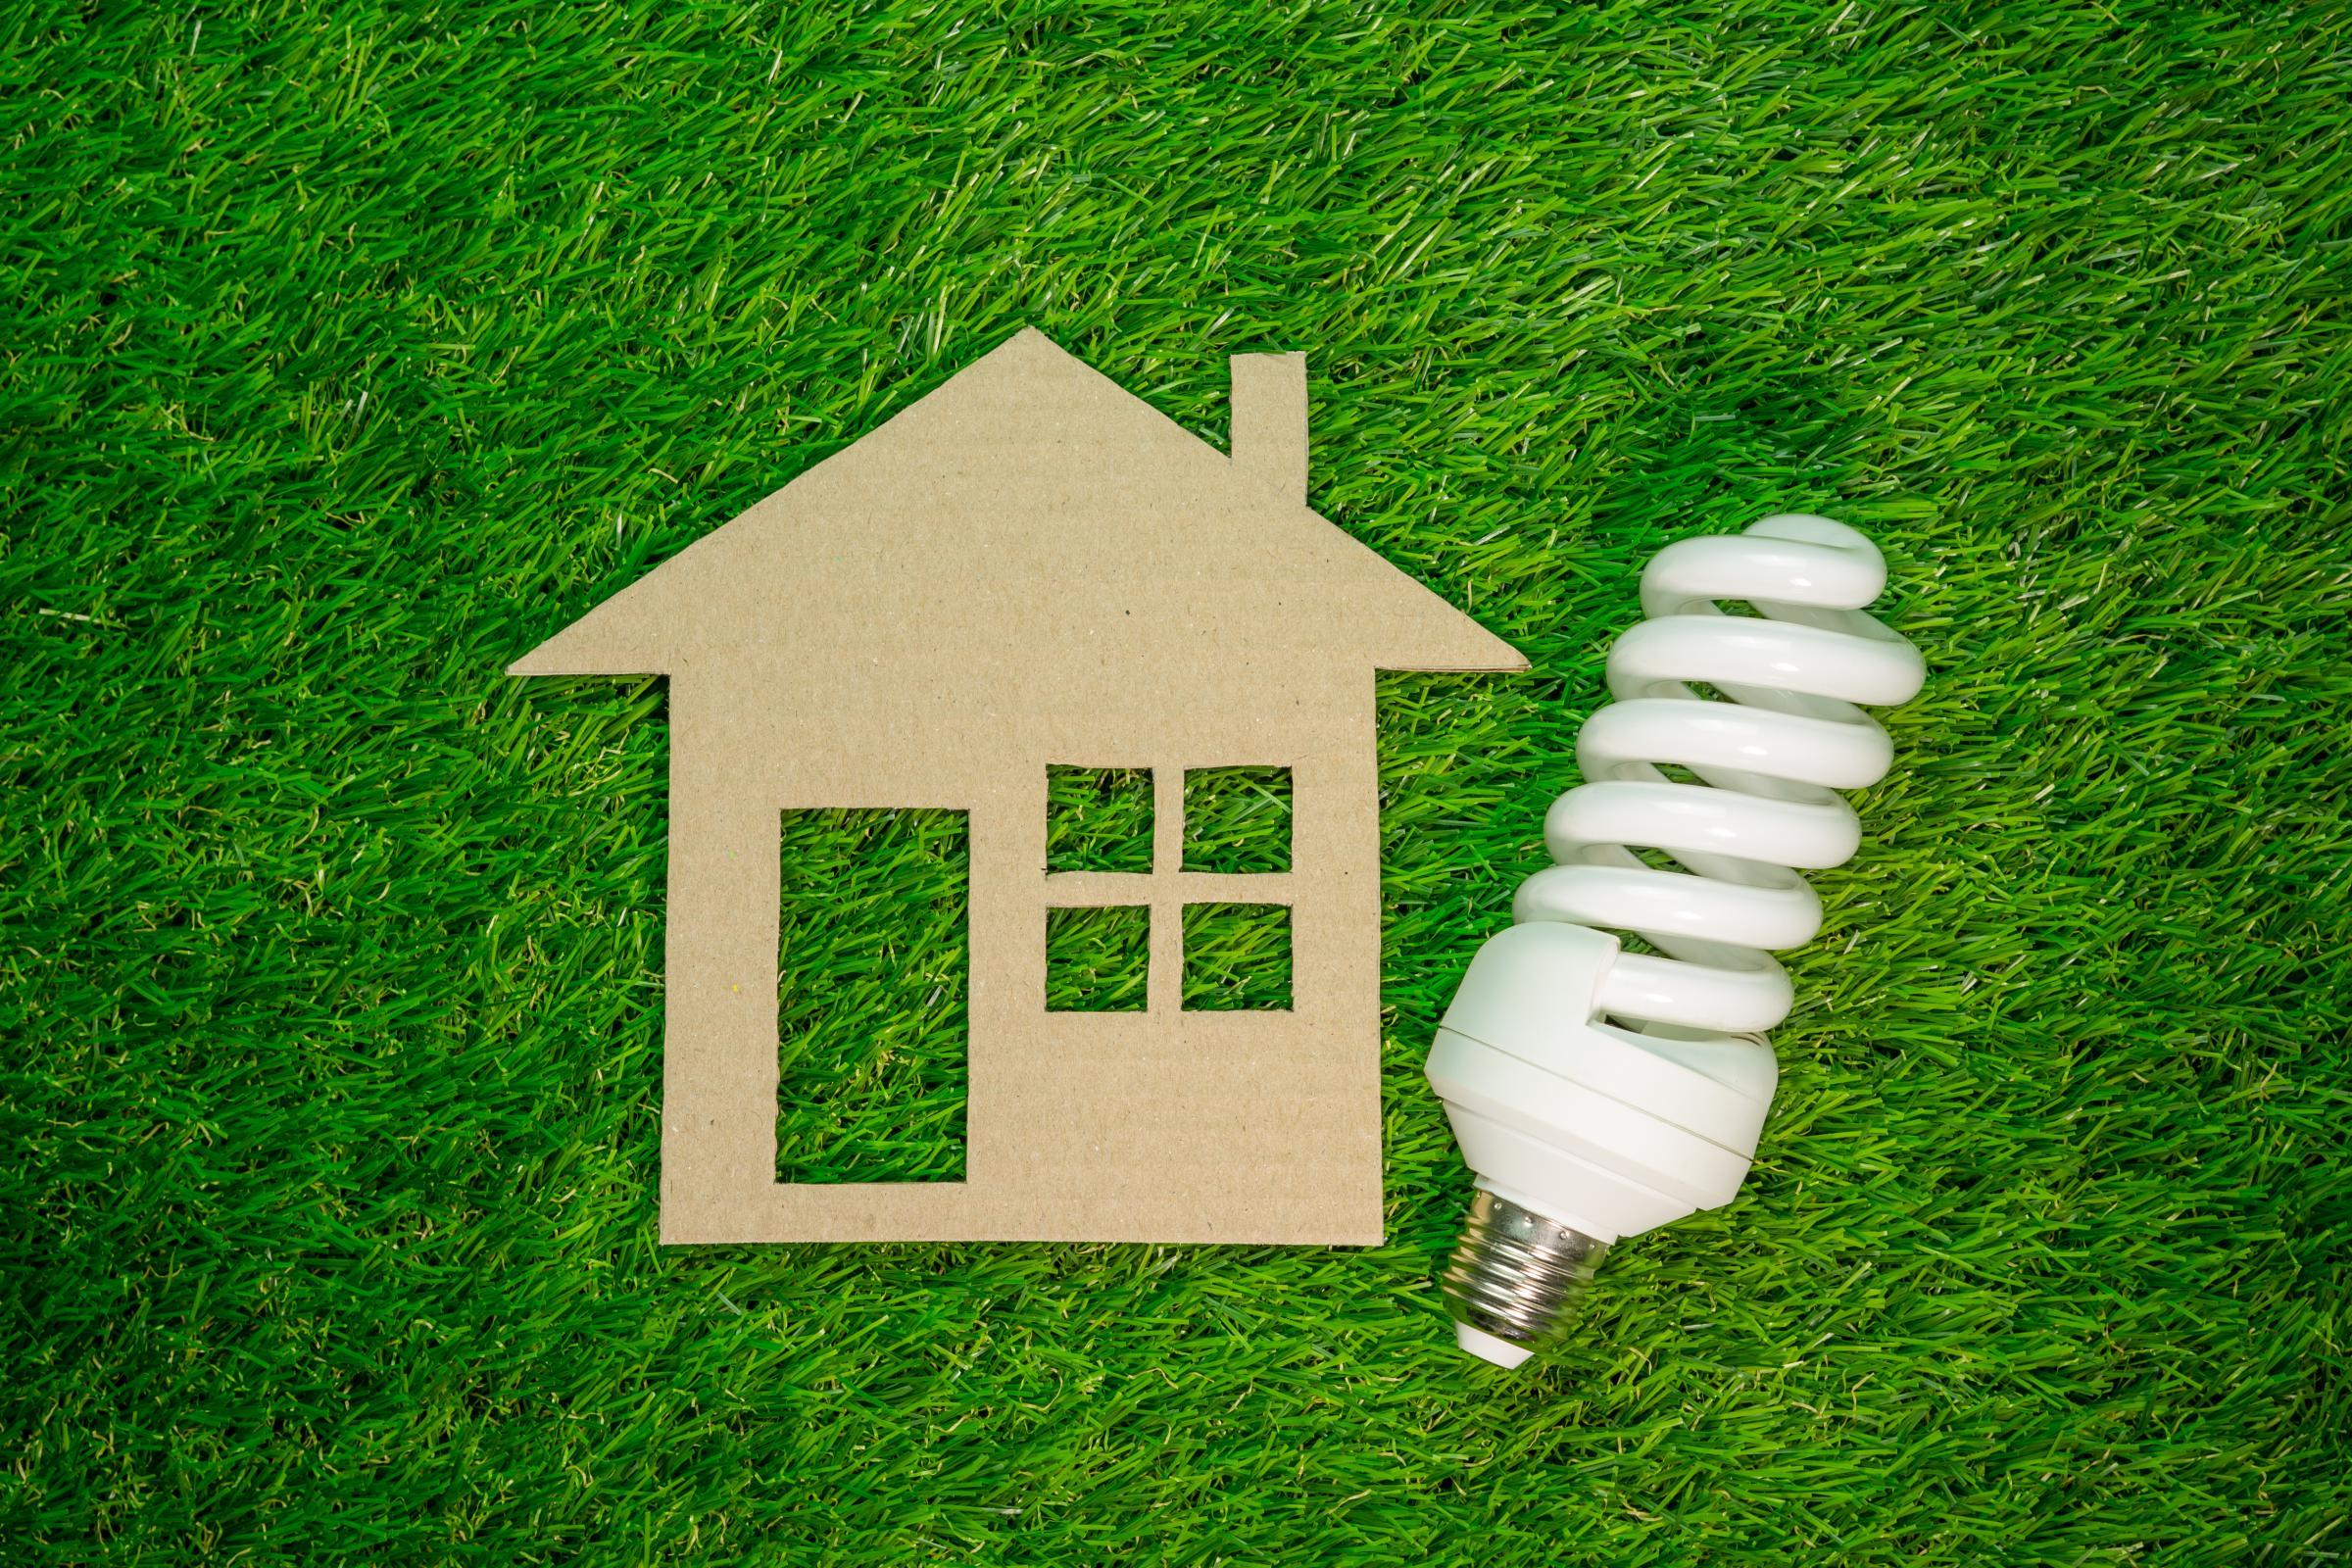 Cut-out paper home next to a CFL light bulb on a grass background